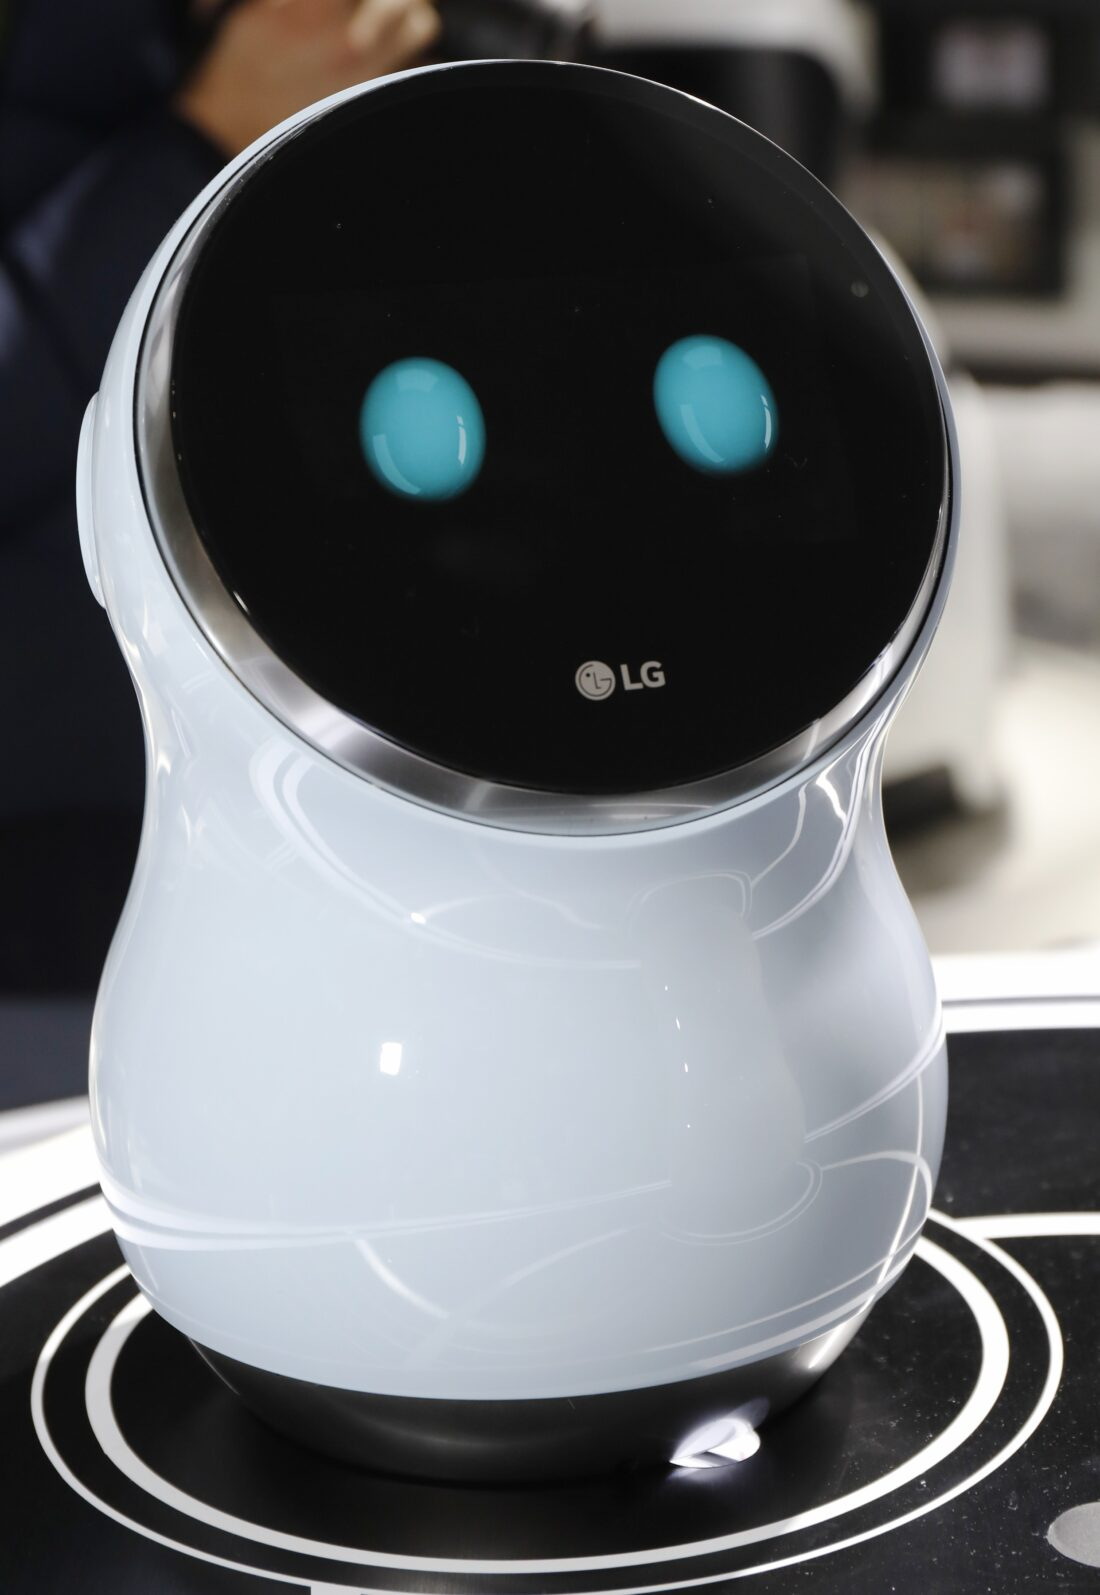 Close-up view of LG's CLOi Hub Robot on display at LG's CES 2017 booth